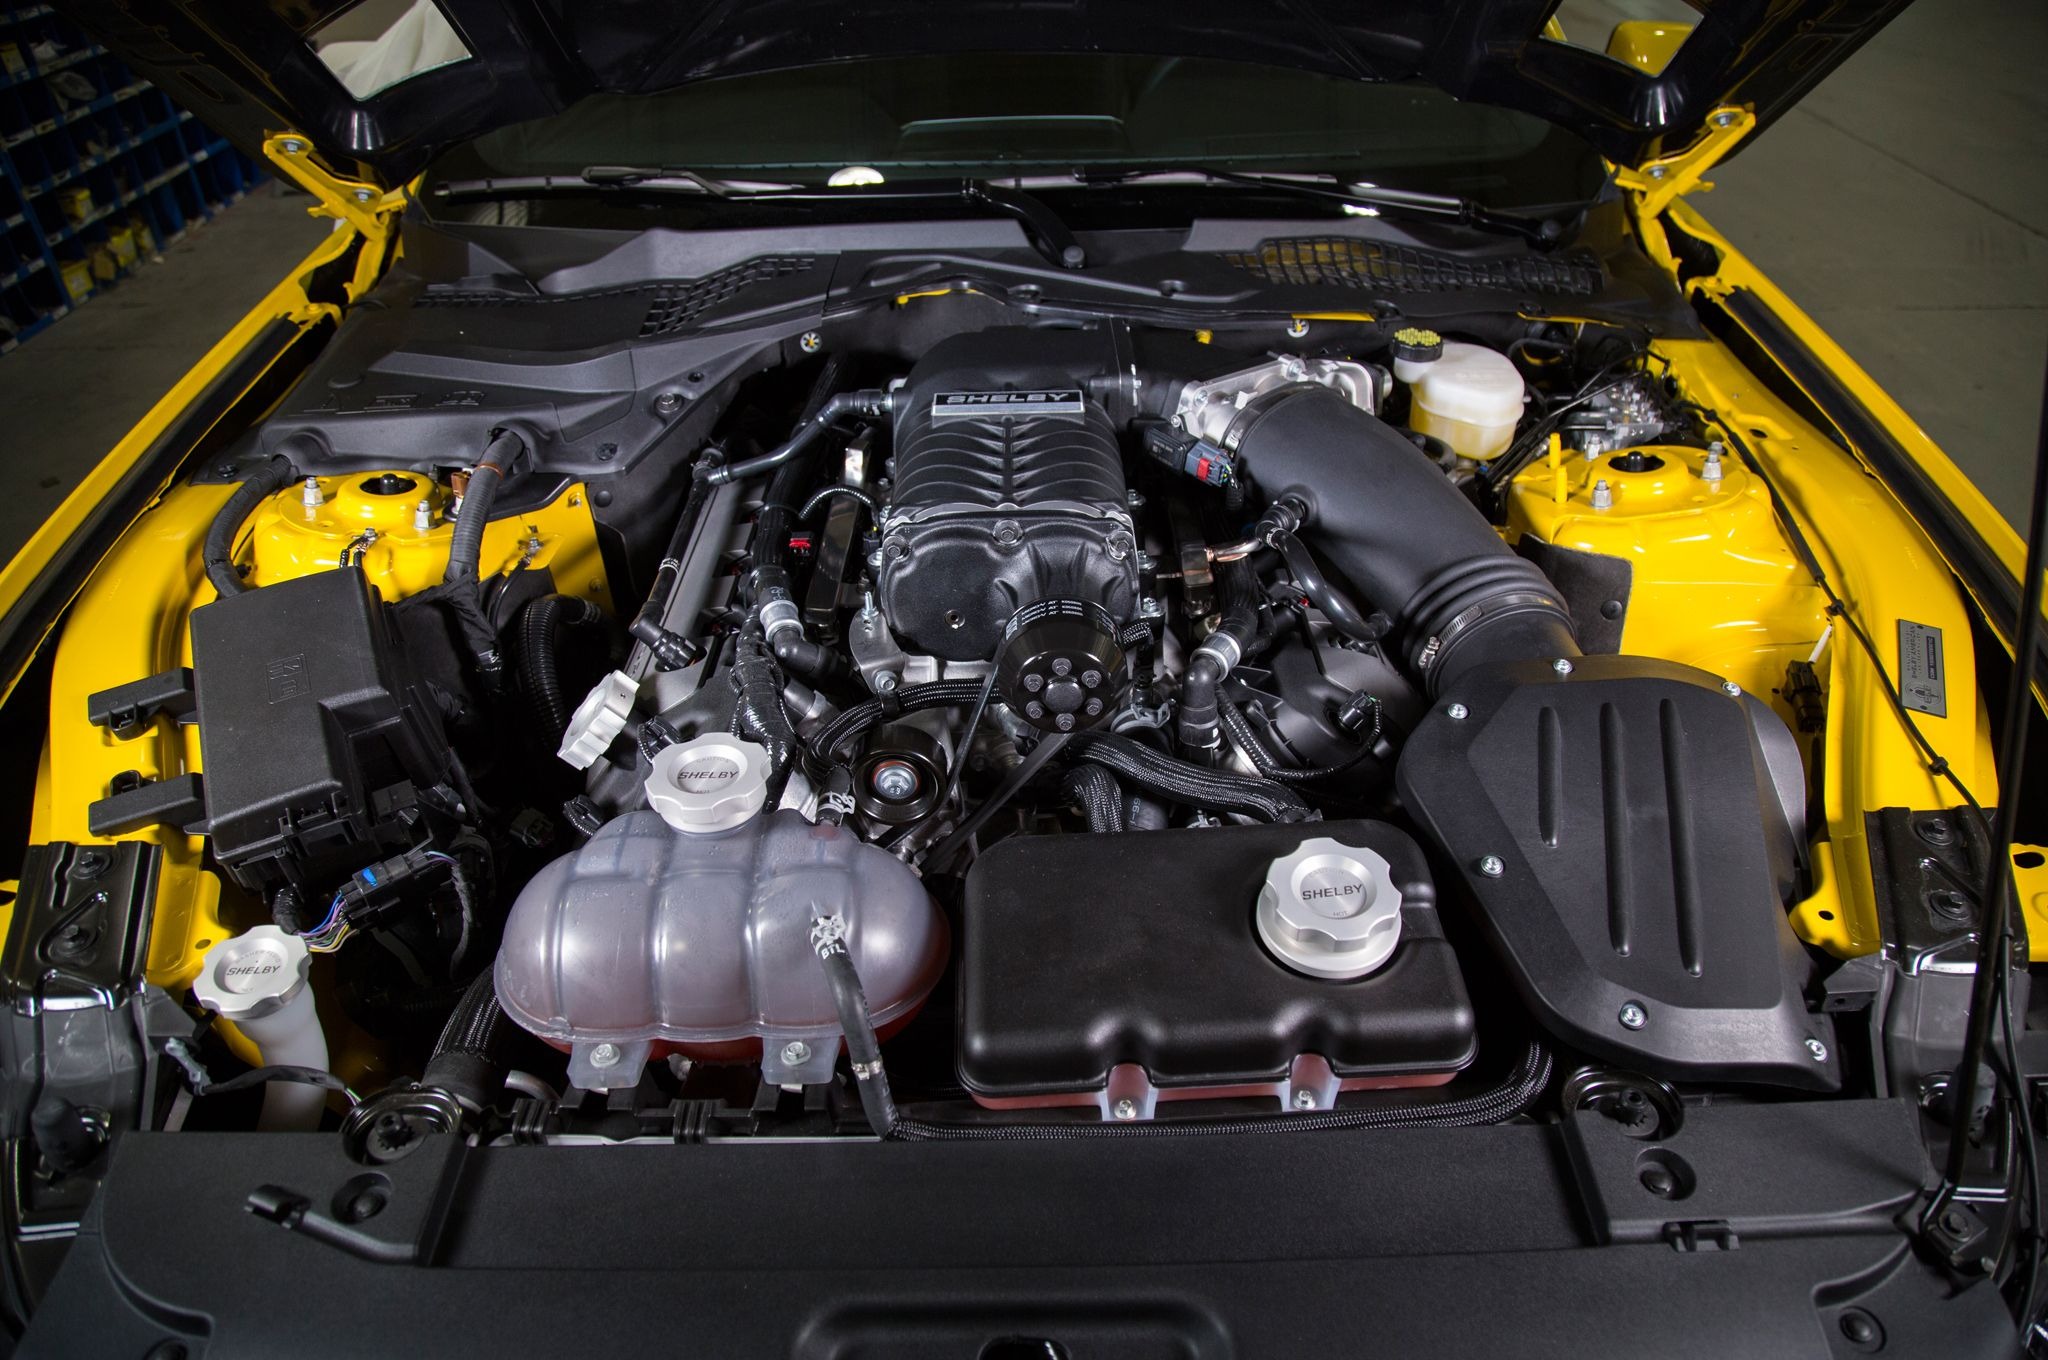 2015 Shelby Gt Is A 627 Hp Tuner Ford Mustang Engine American Provided By Motortrend Mustangford